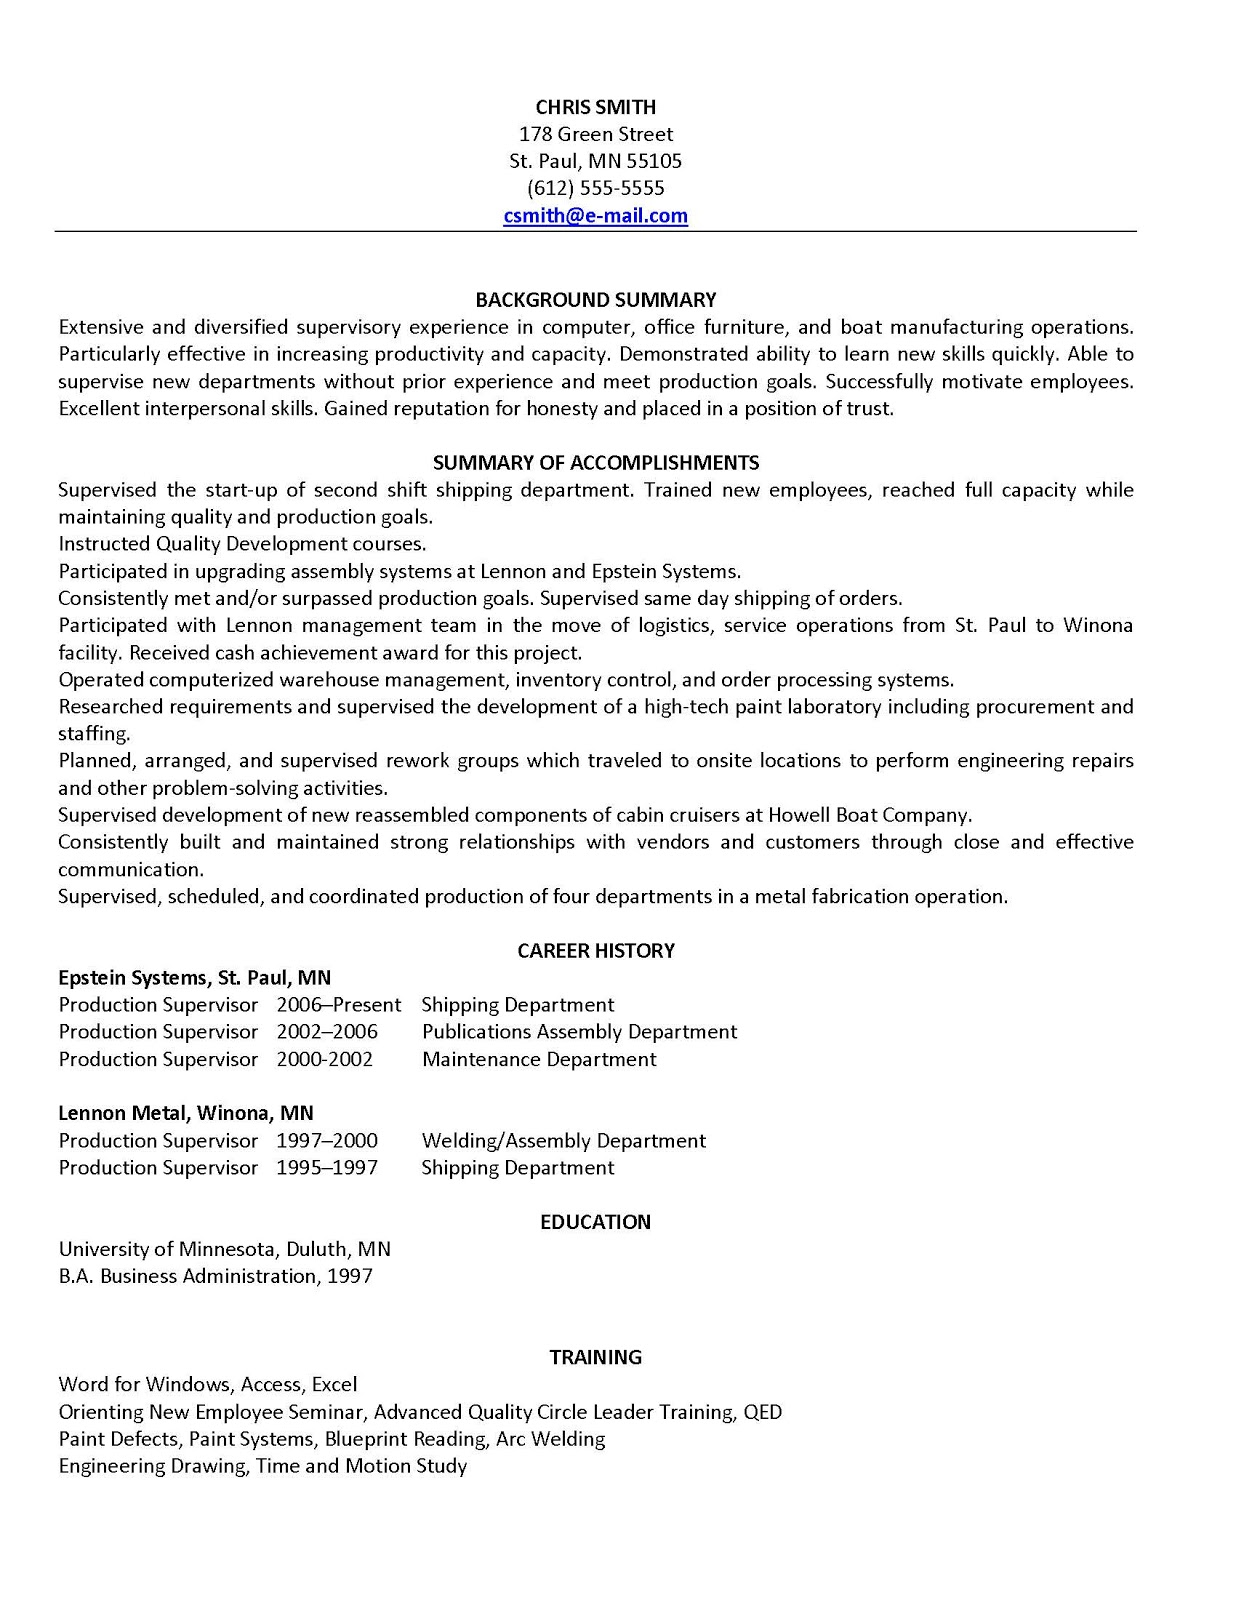 Basic Resume Samples      Best  cv resume samples free download latest     TEXT  Source https   meganwinsby files wordpress com         resume sample png